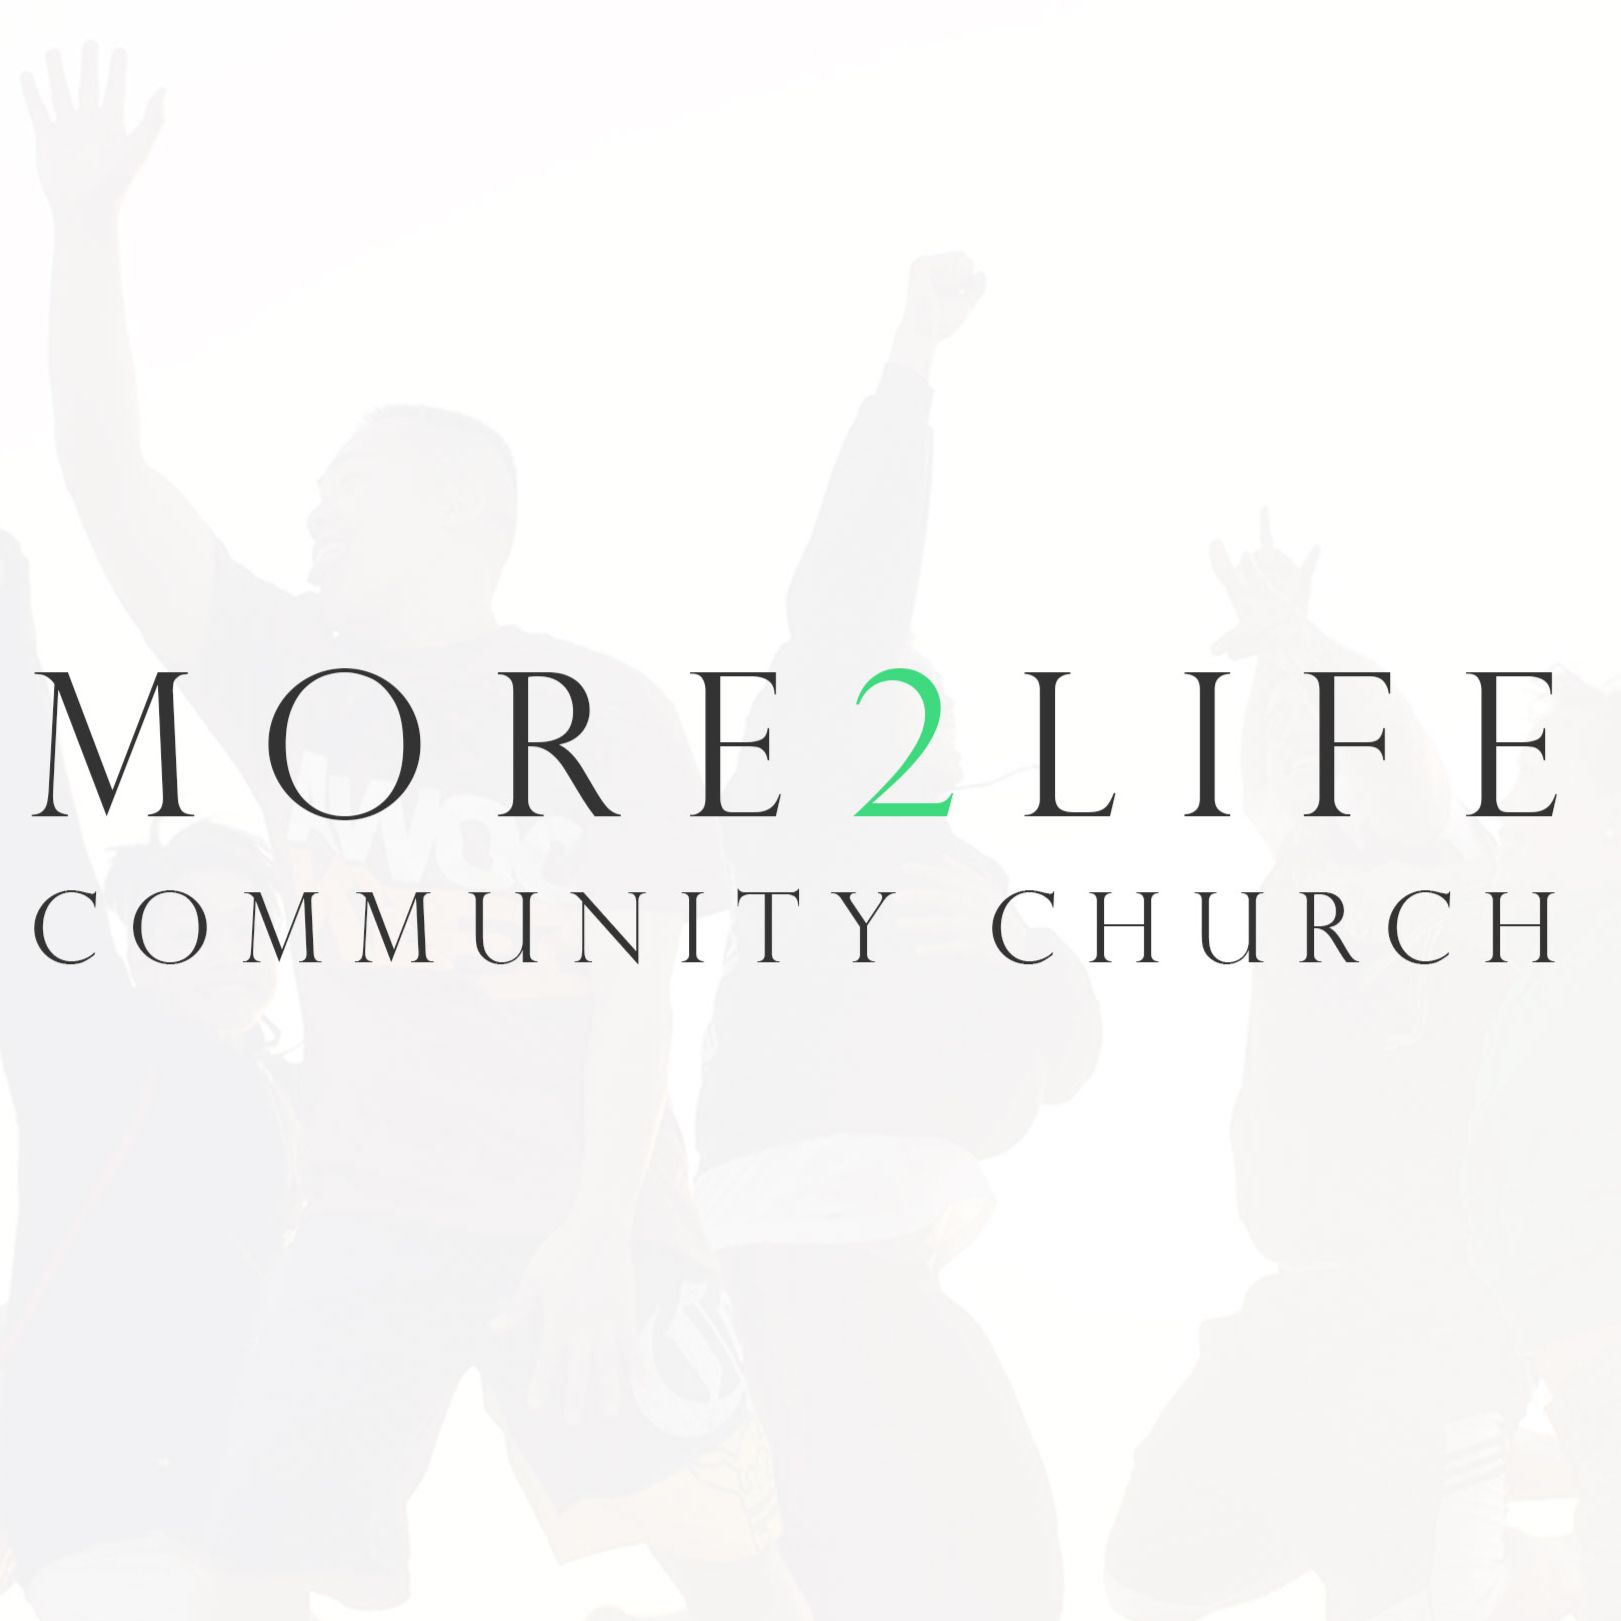 More2Life Community Church